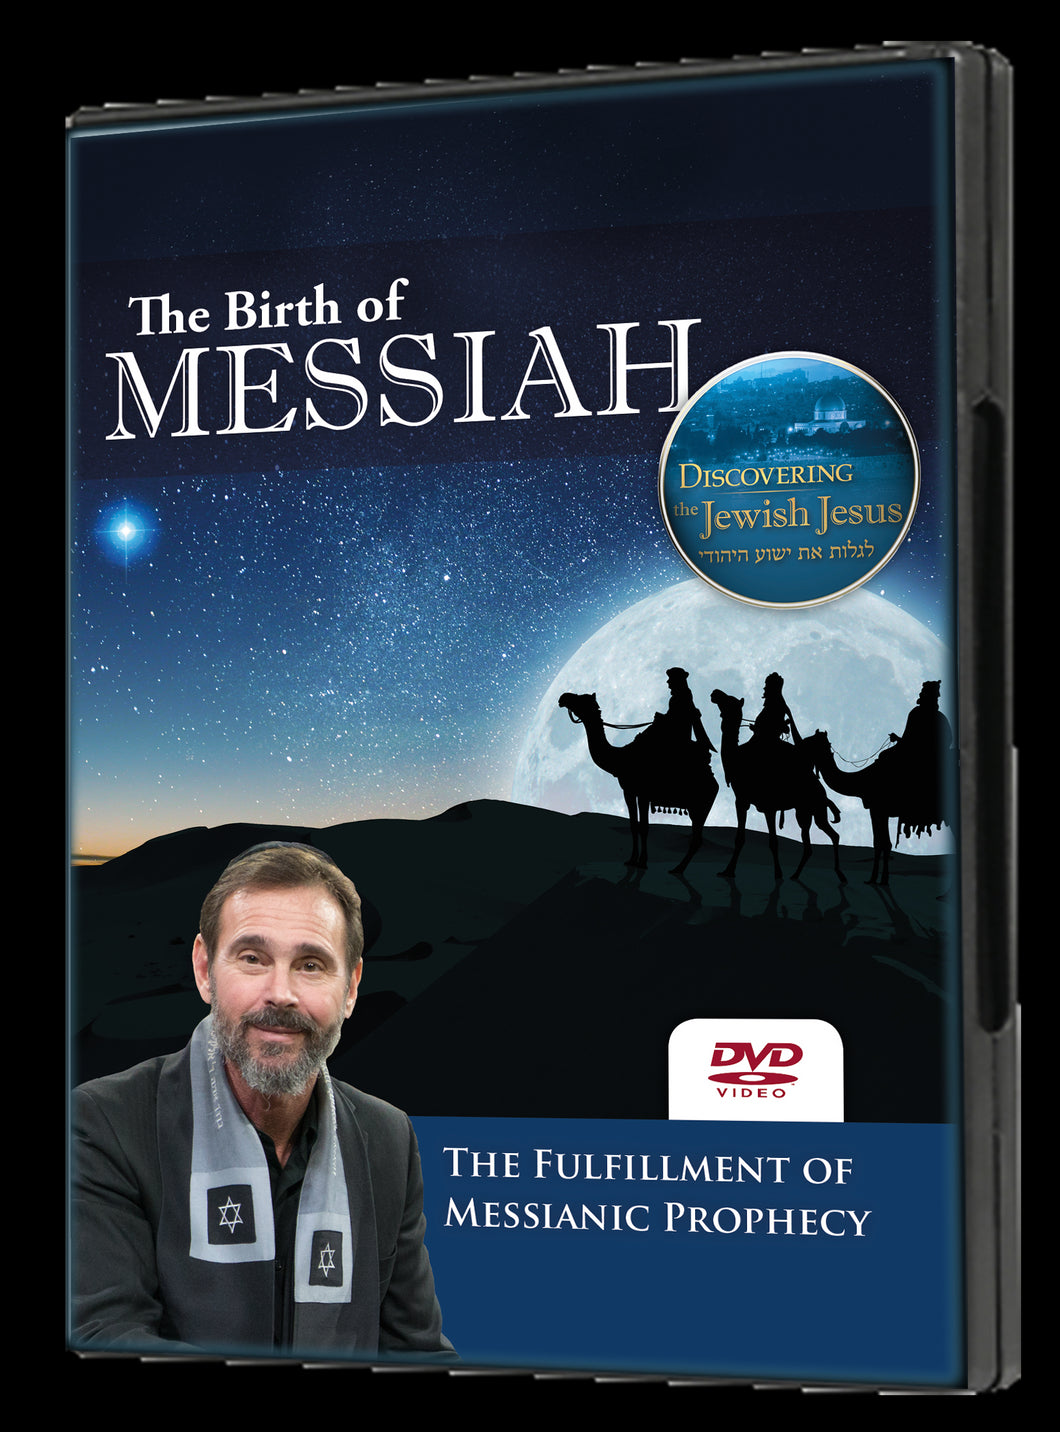 The Birth of Messiah